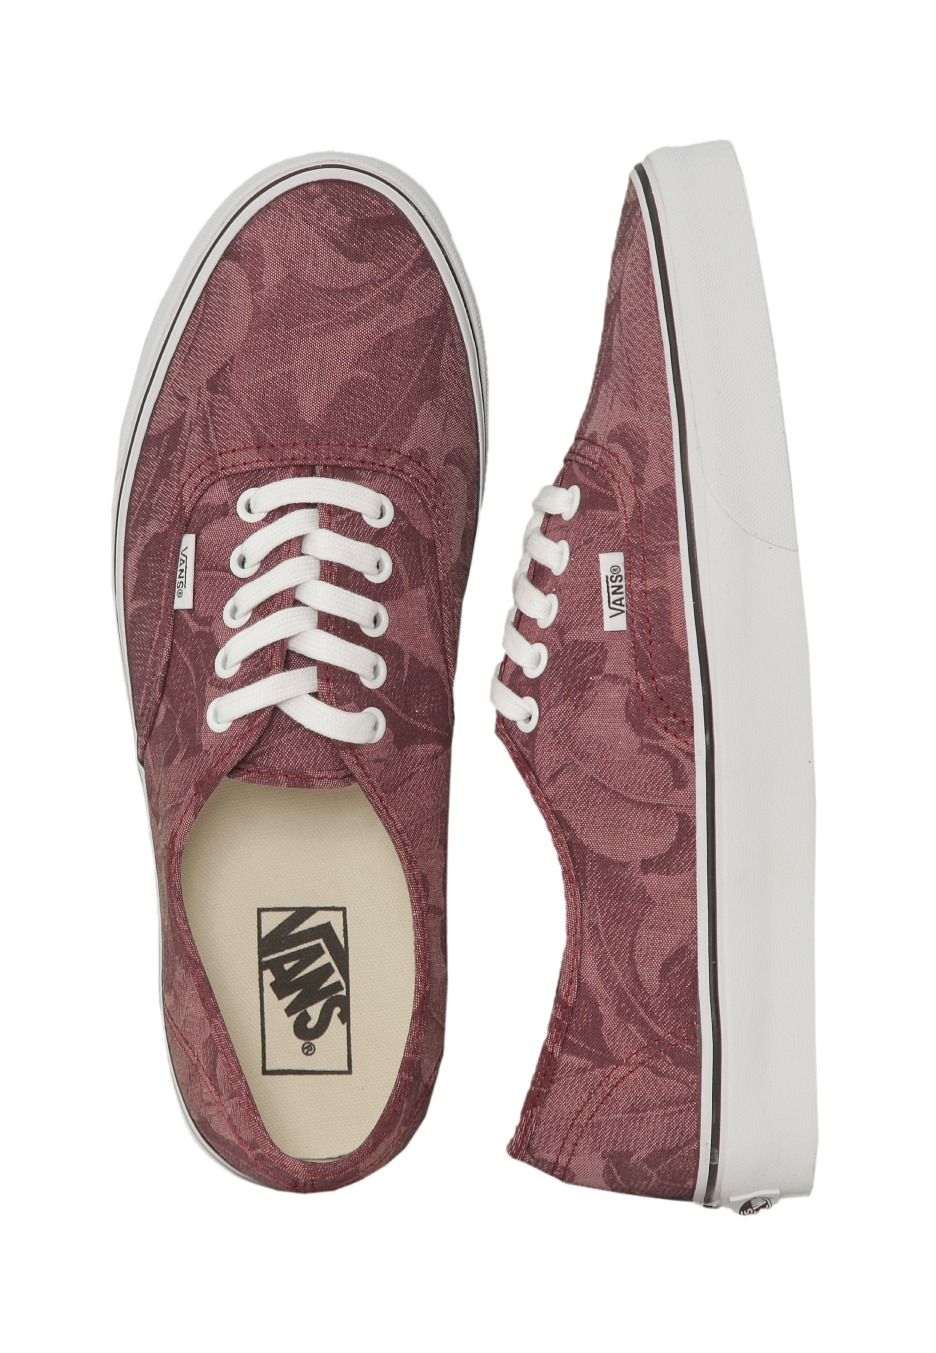 Vans - Authentic Chambray Leaves Windsor Wine - Shoes - Impericon.com  Worldwide